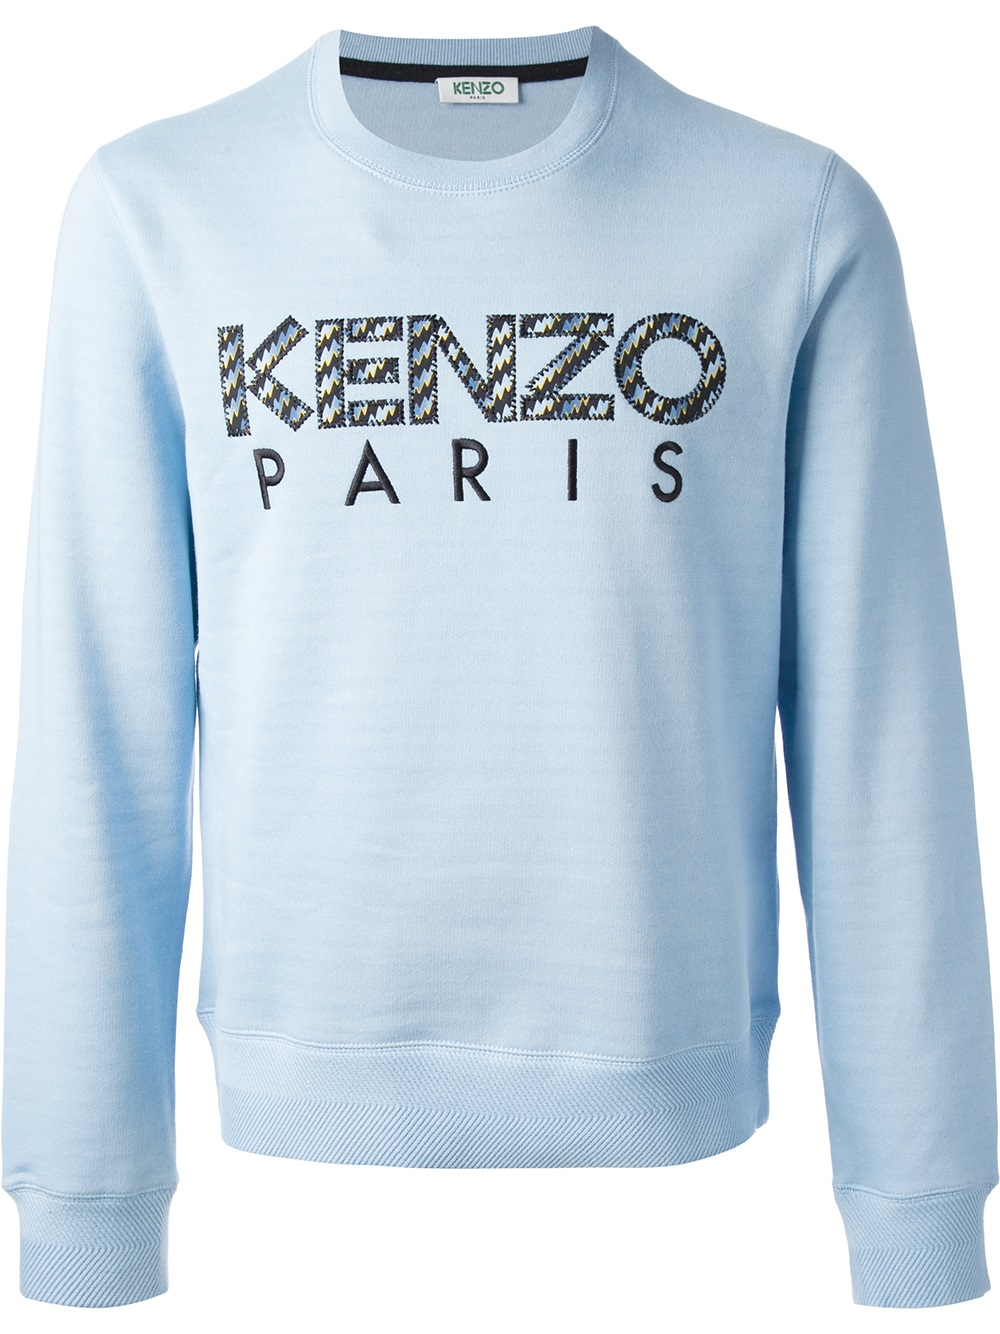 kenzo 39 icon 39 sweater in blue for men lyst. Black Bedroom Furniture Sets. Home Design Ideas